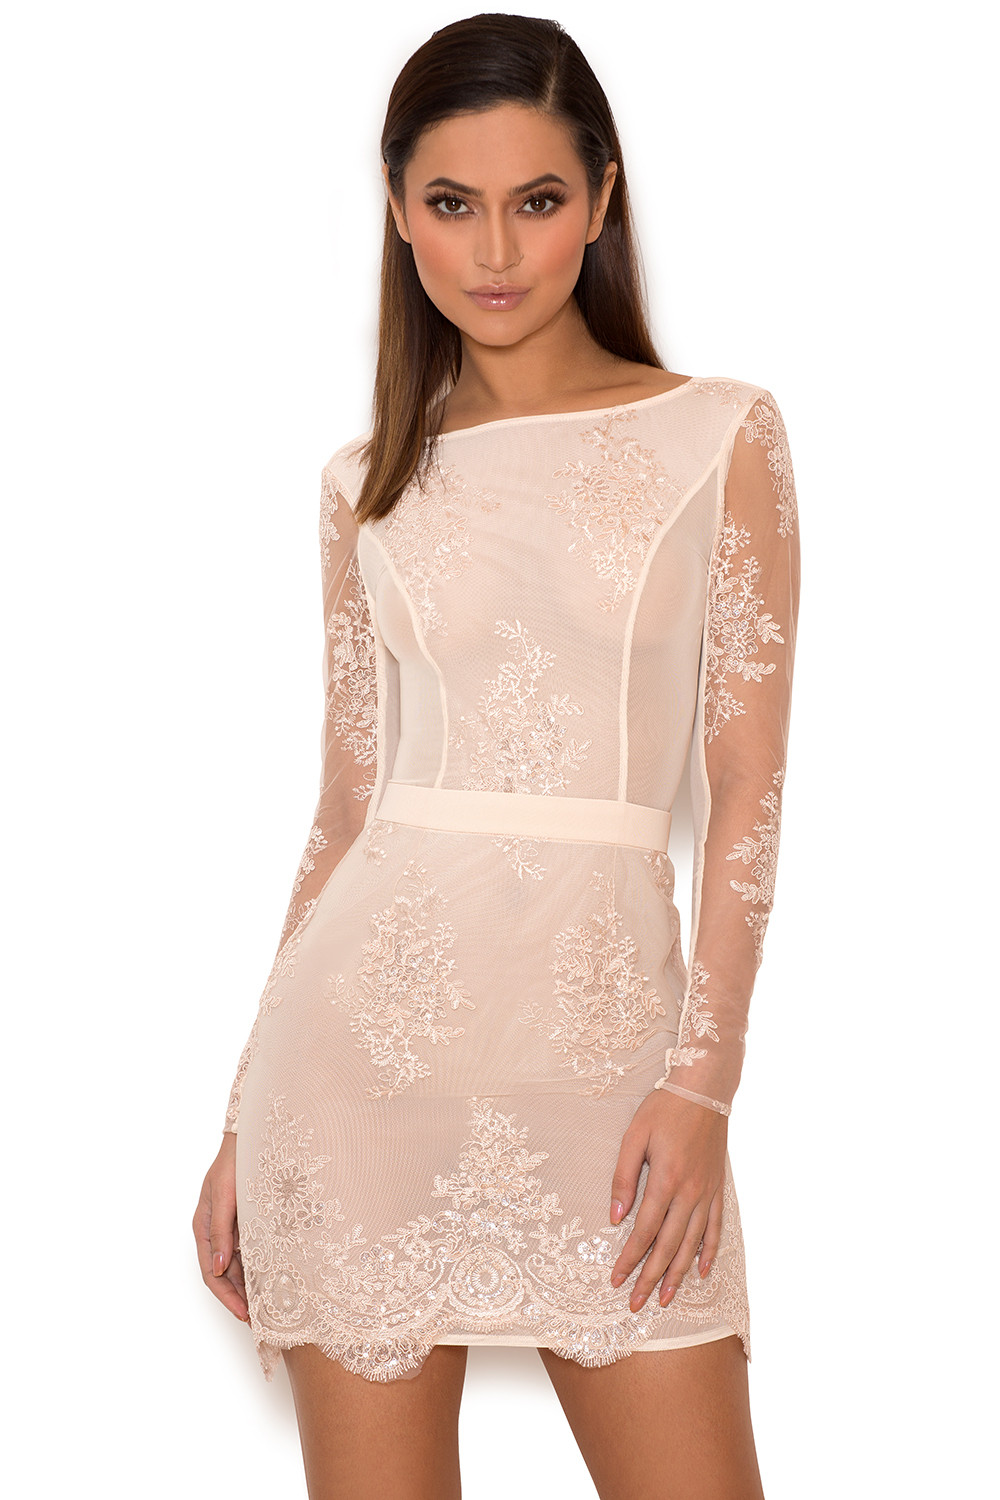 Clothing : Bodycon Dresses : 'Sathea' Light Pink Lace and Sequin ...